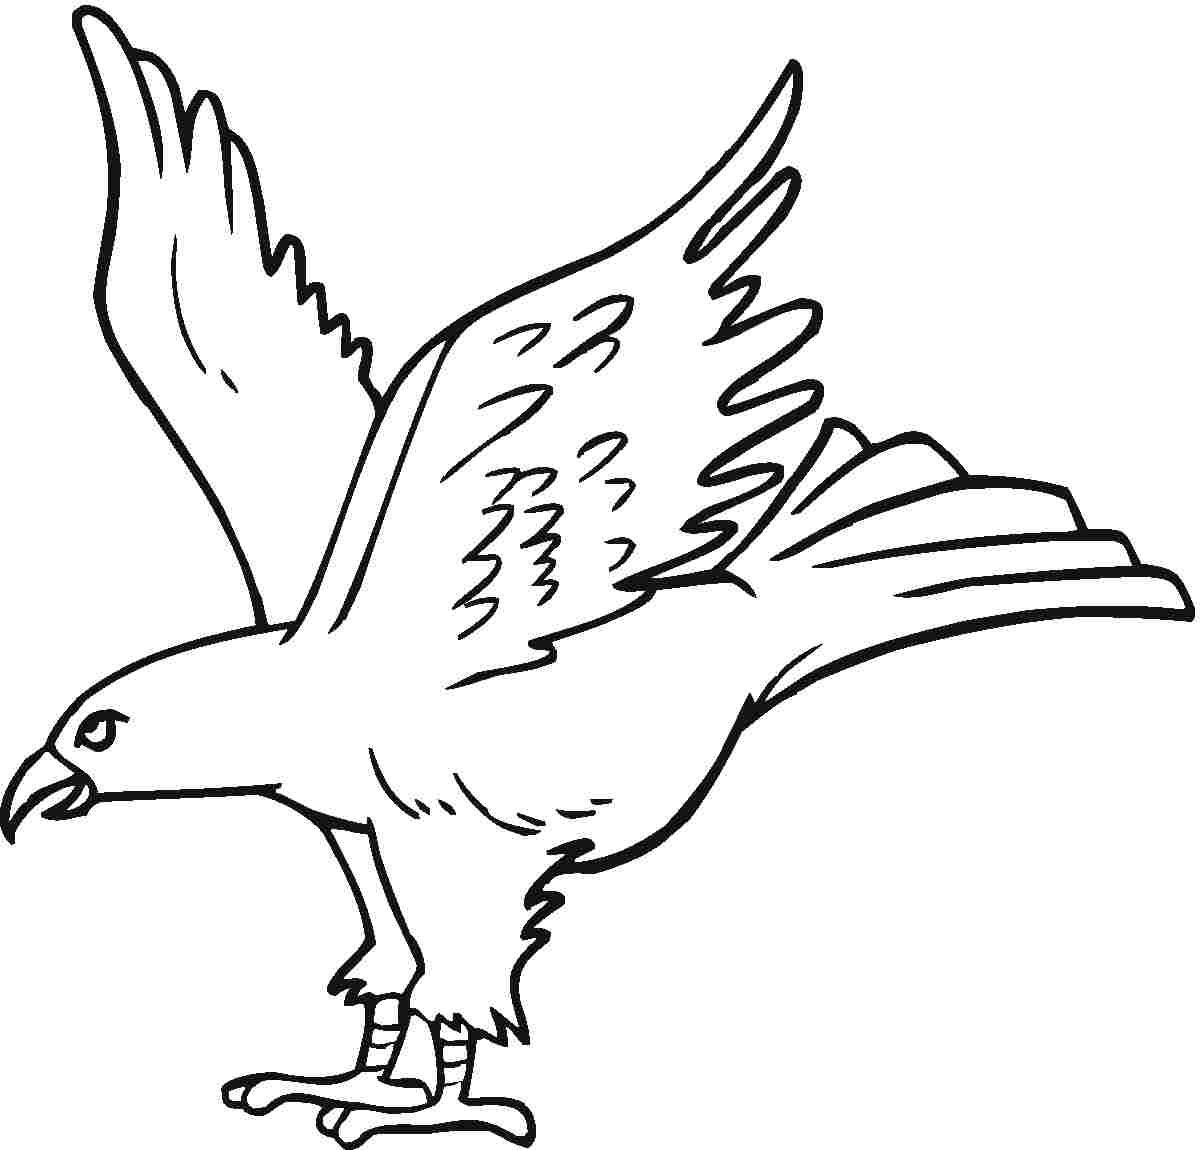 Free Printable Eagle Coloring Pages For Kids | Coloring pages for kids, Coloring  pages, Animal coloring pages